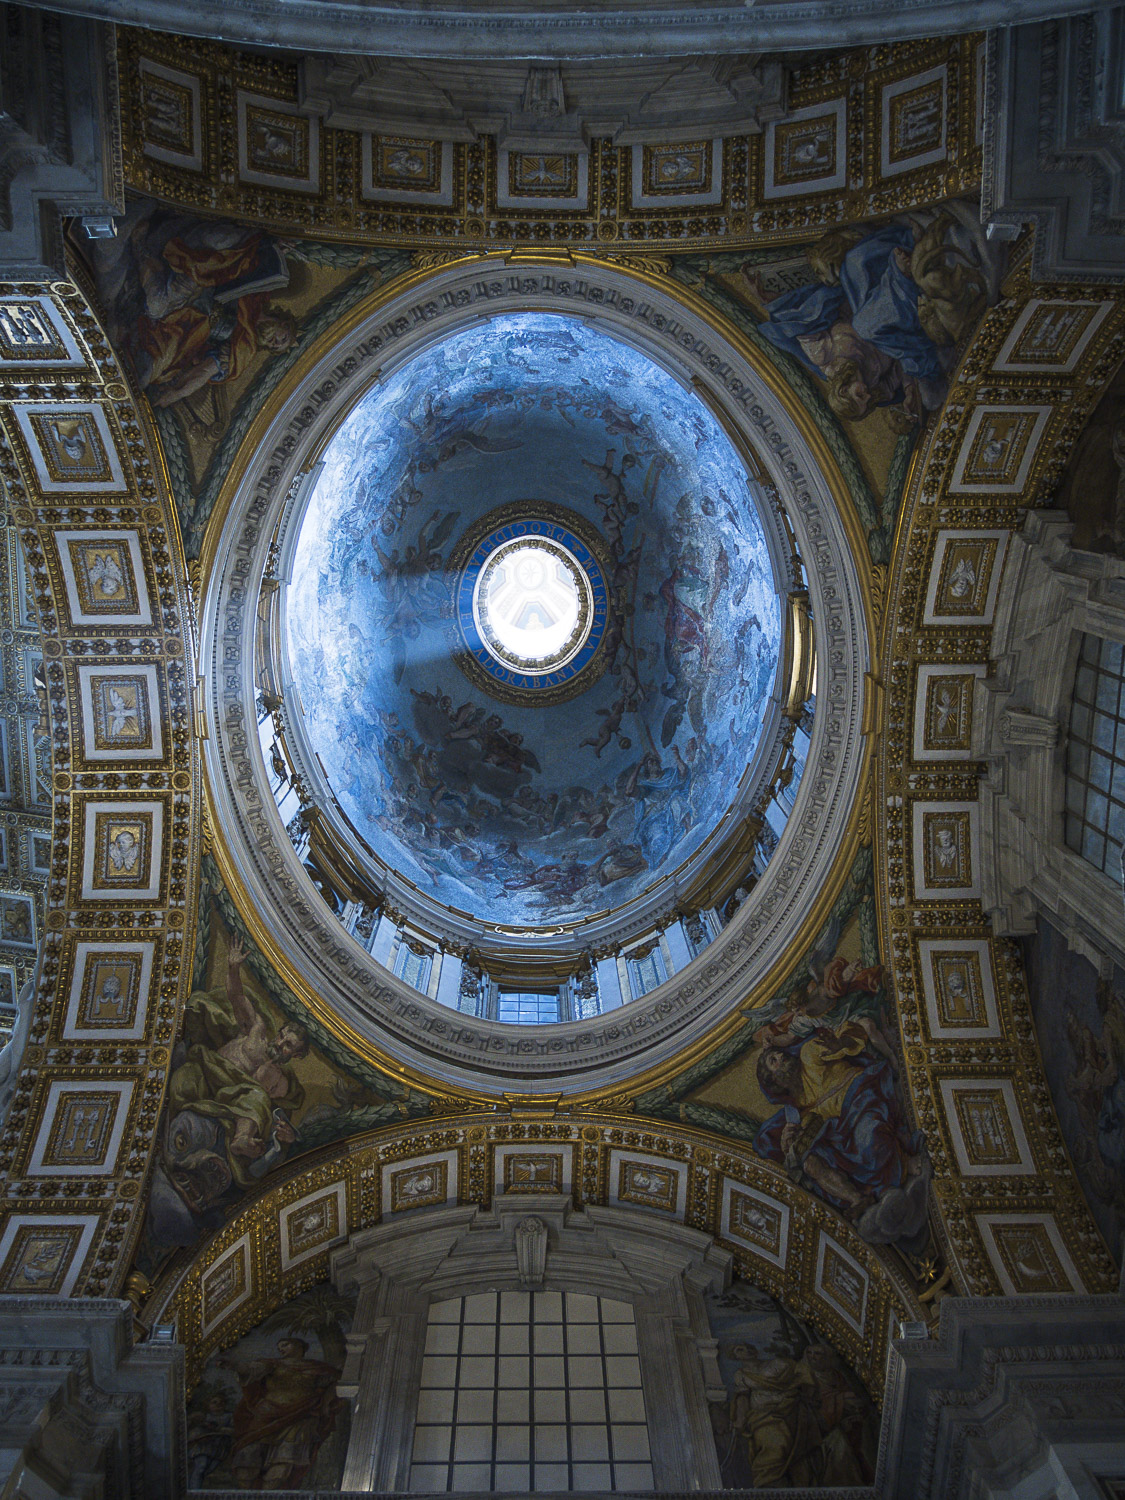 Who Fell Down, St. Peter's Basilica, Rome, Italy, 2015